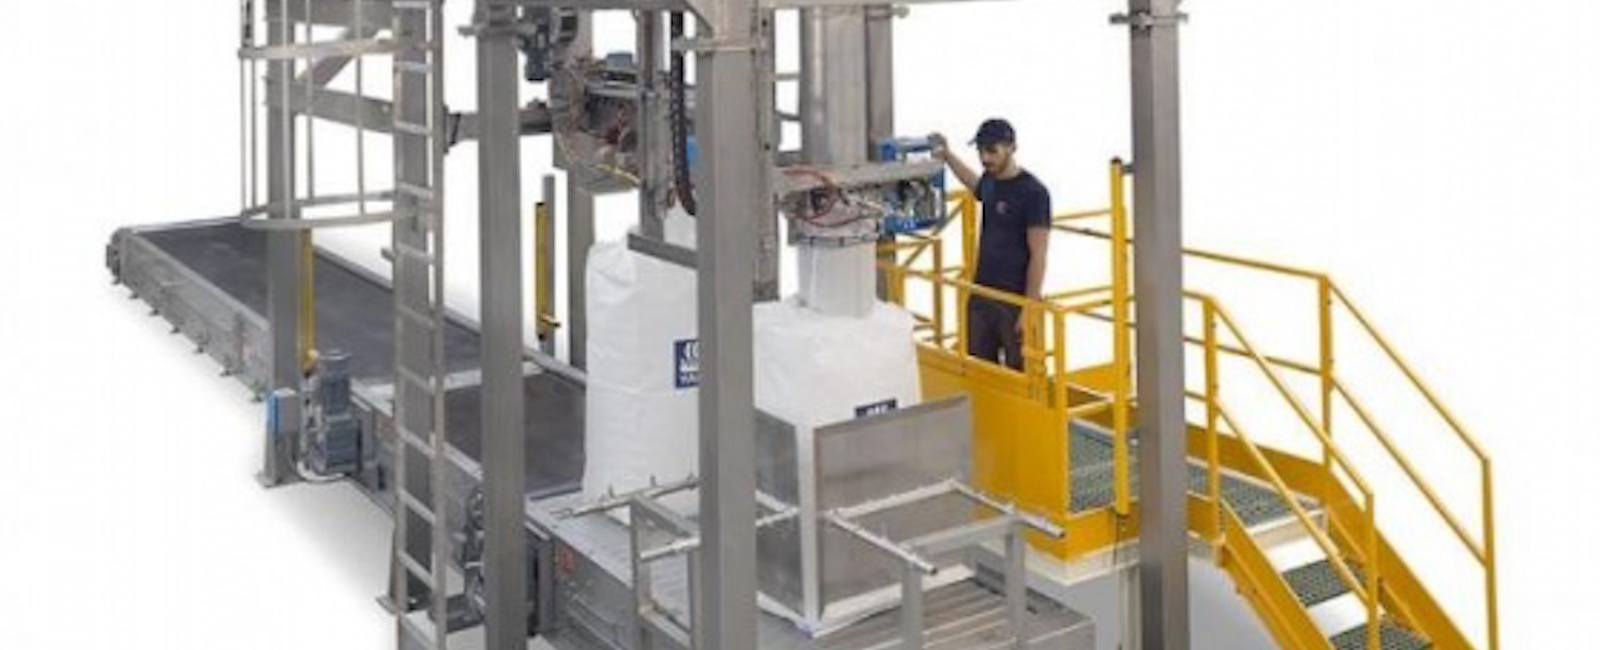 Concetti: Automatic Bulk Bag Filling and Closing of Single Loop Bulk Bags